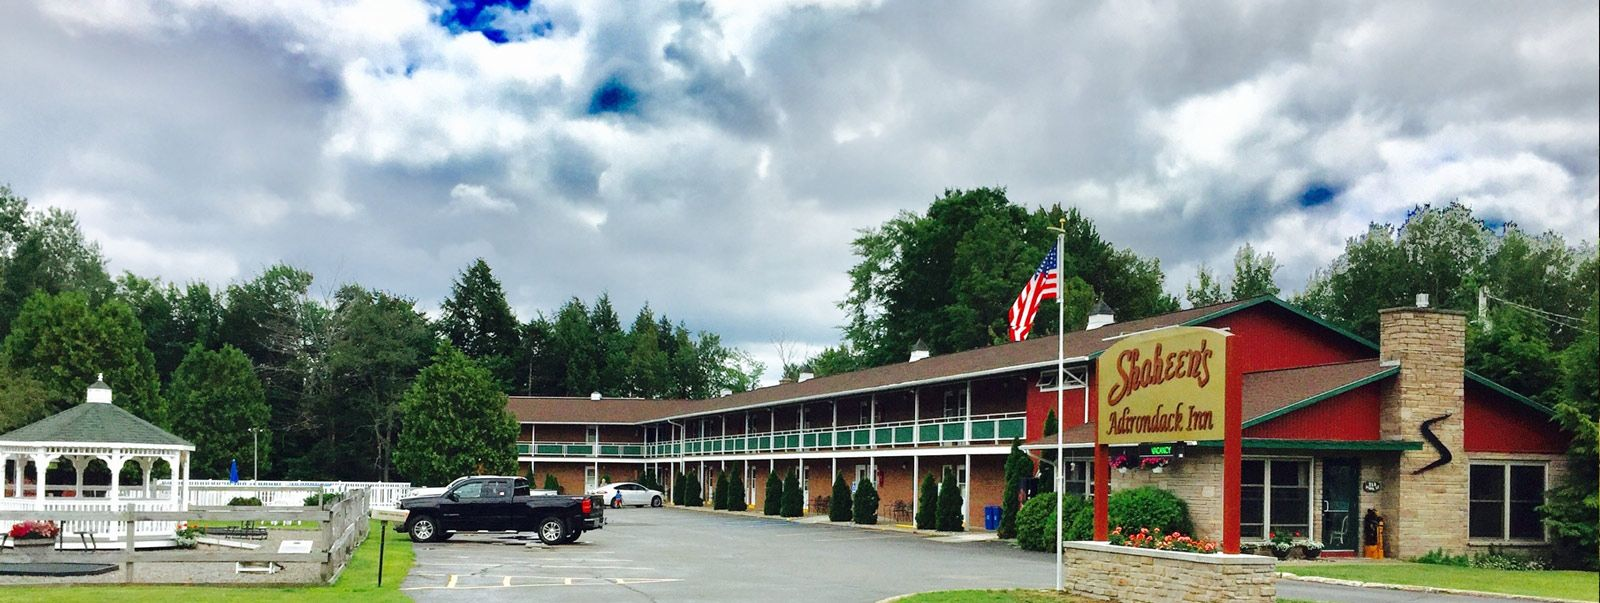 New York Lodging In Tupper Lake At Shaheens Adirondack Inn An Motel